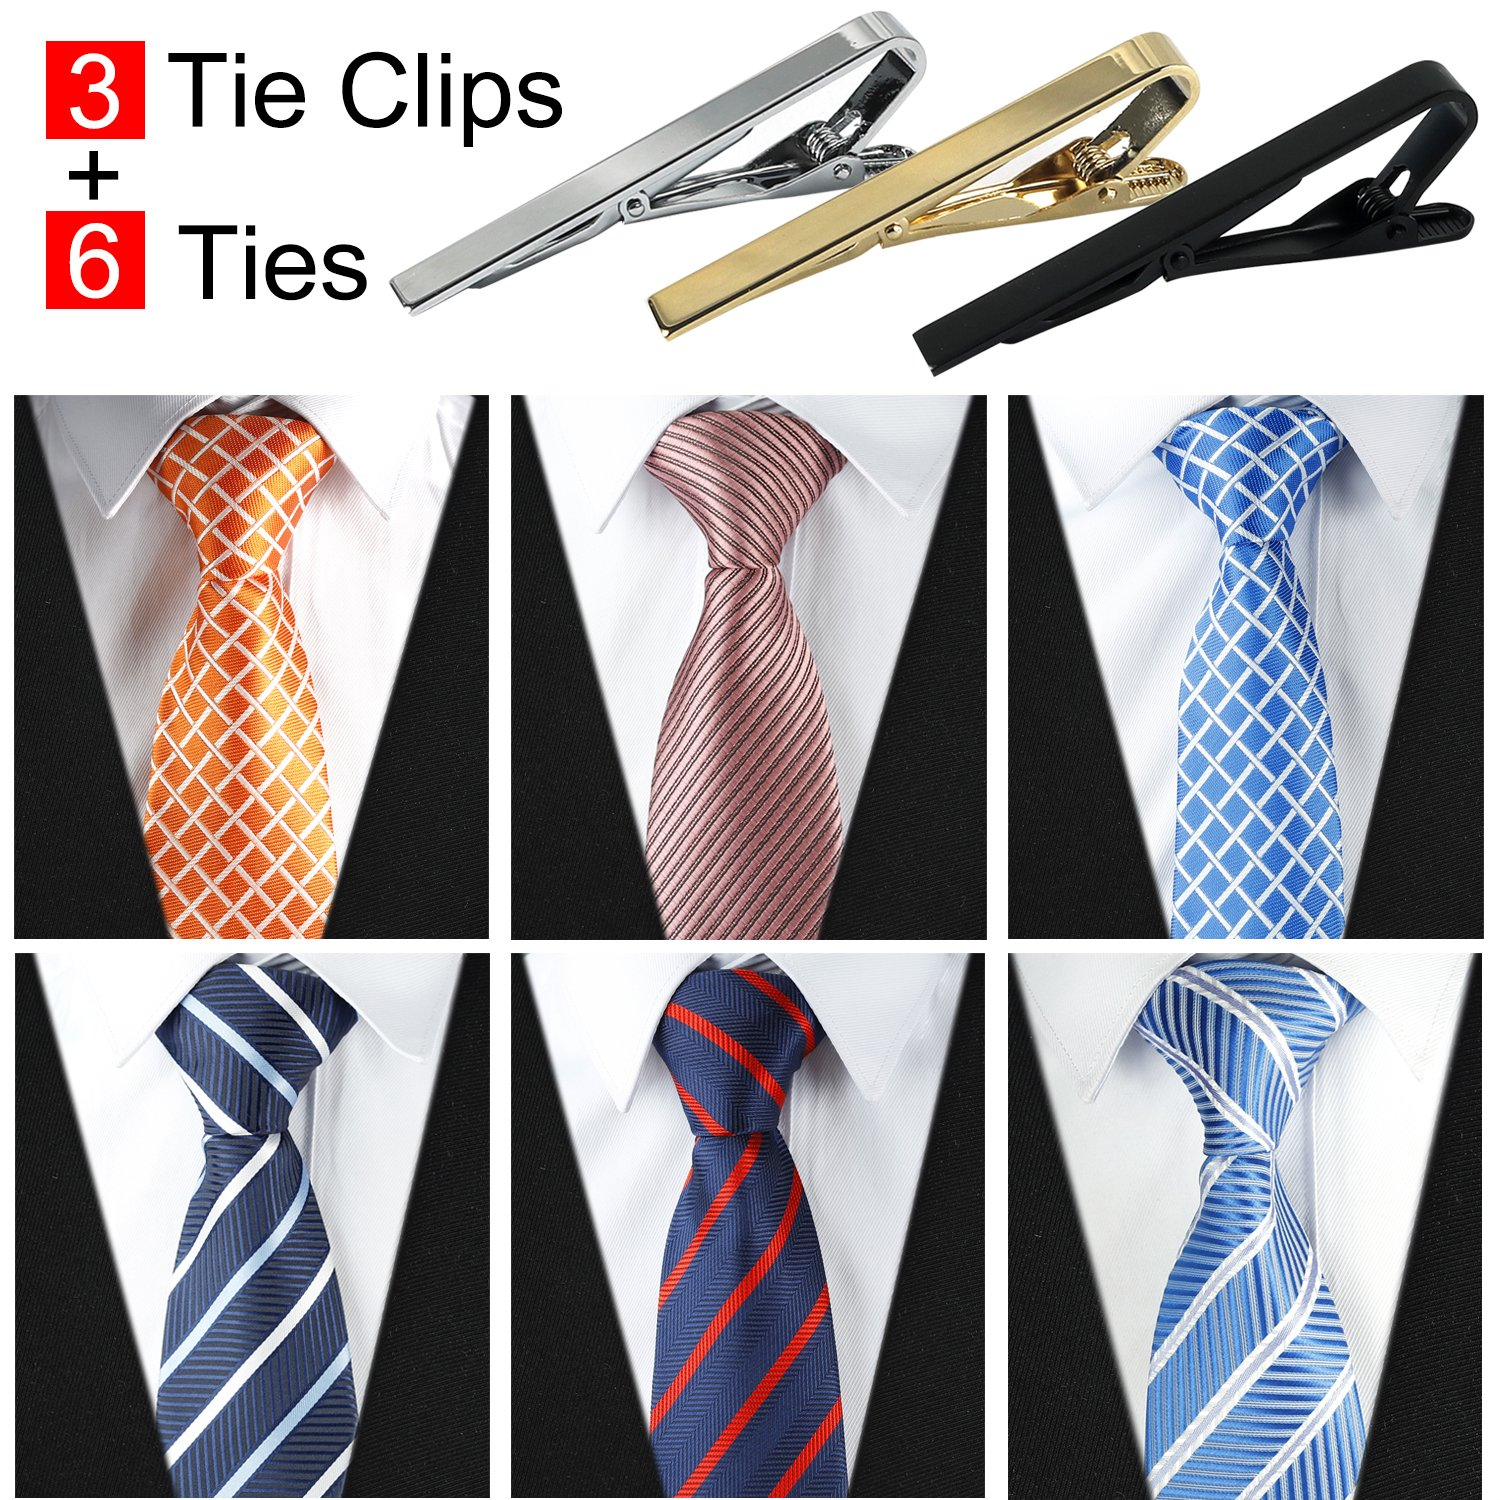 0ccee77bf46 Get Quotations · Jeatonge Lot 6pcs Mens Ties and 3pcs Tie Clips